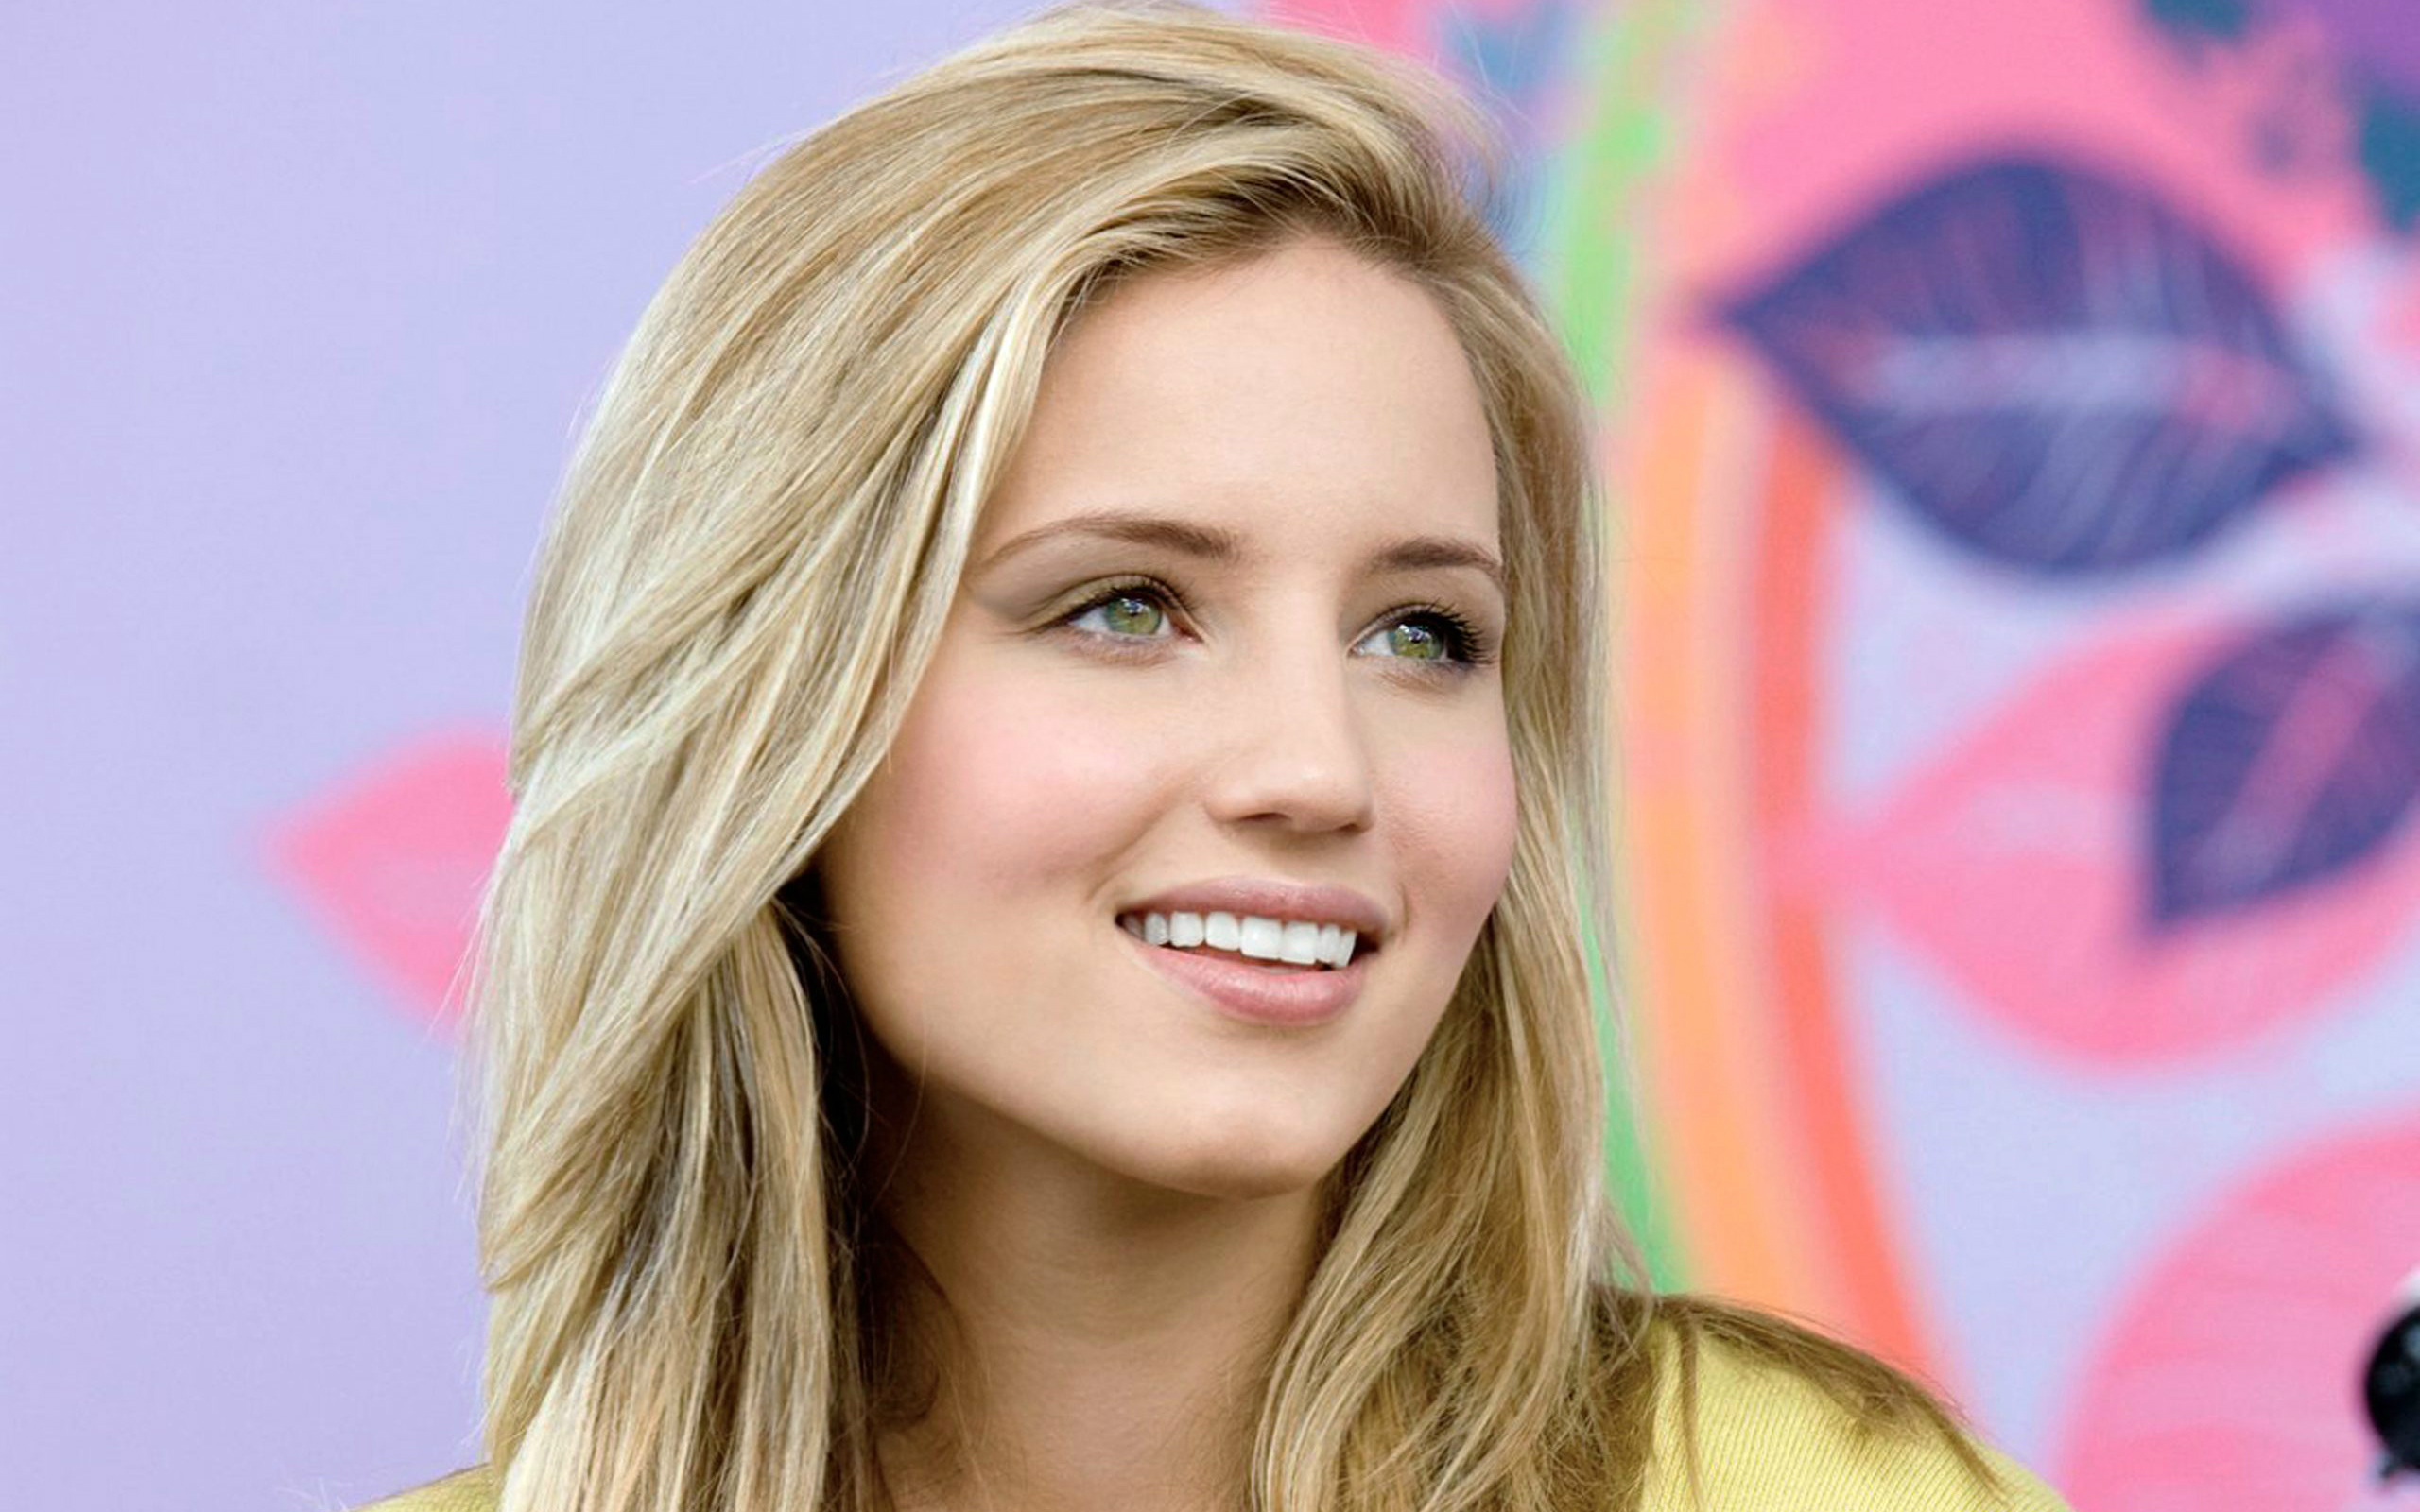 2560x1600 - Dianna Agron Wallpapers 6